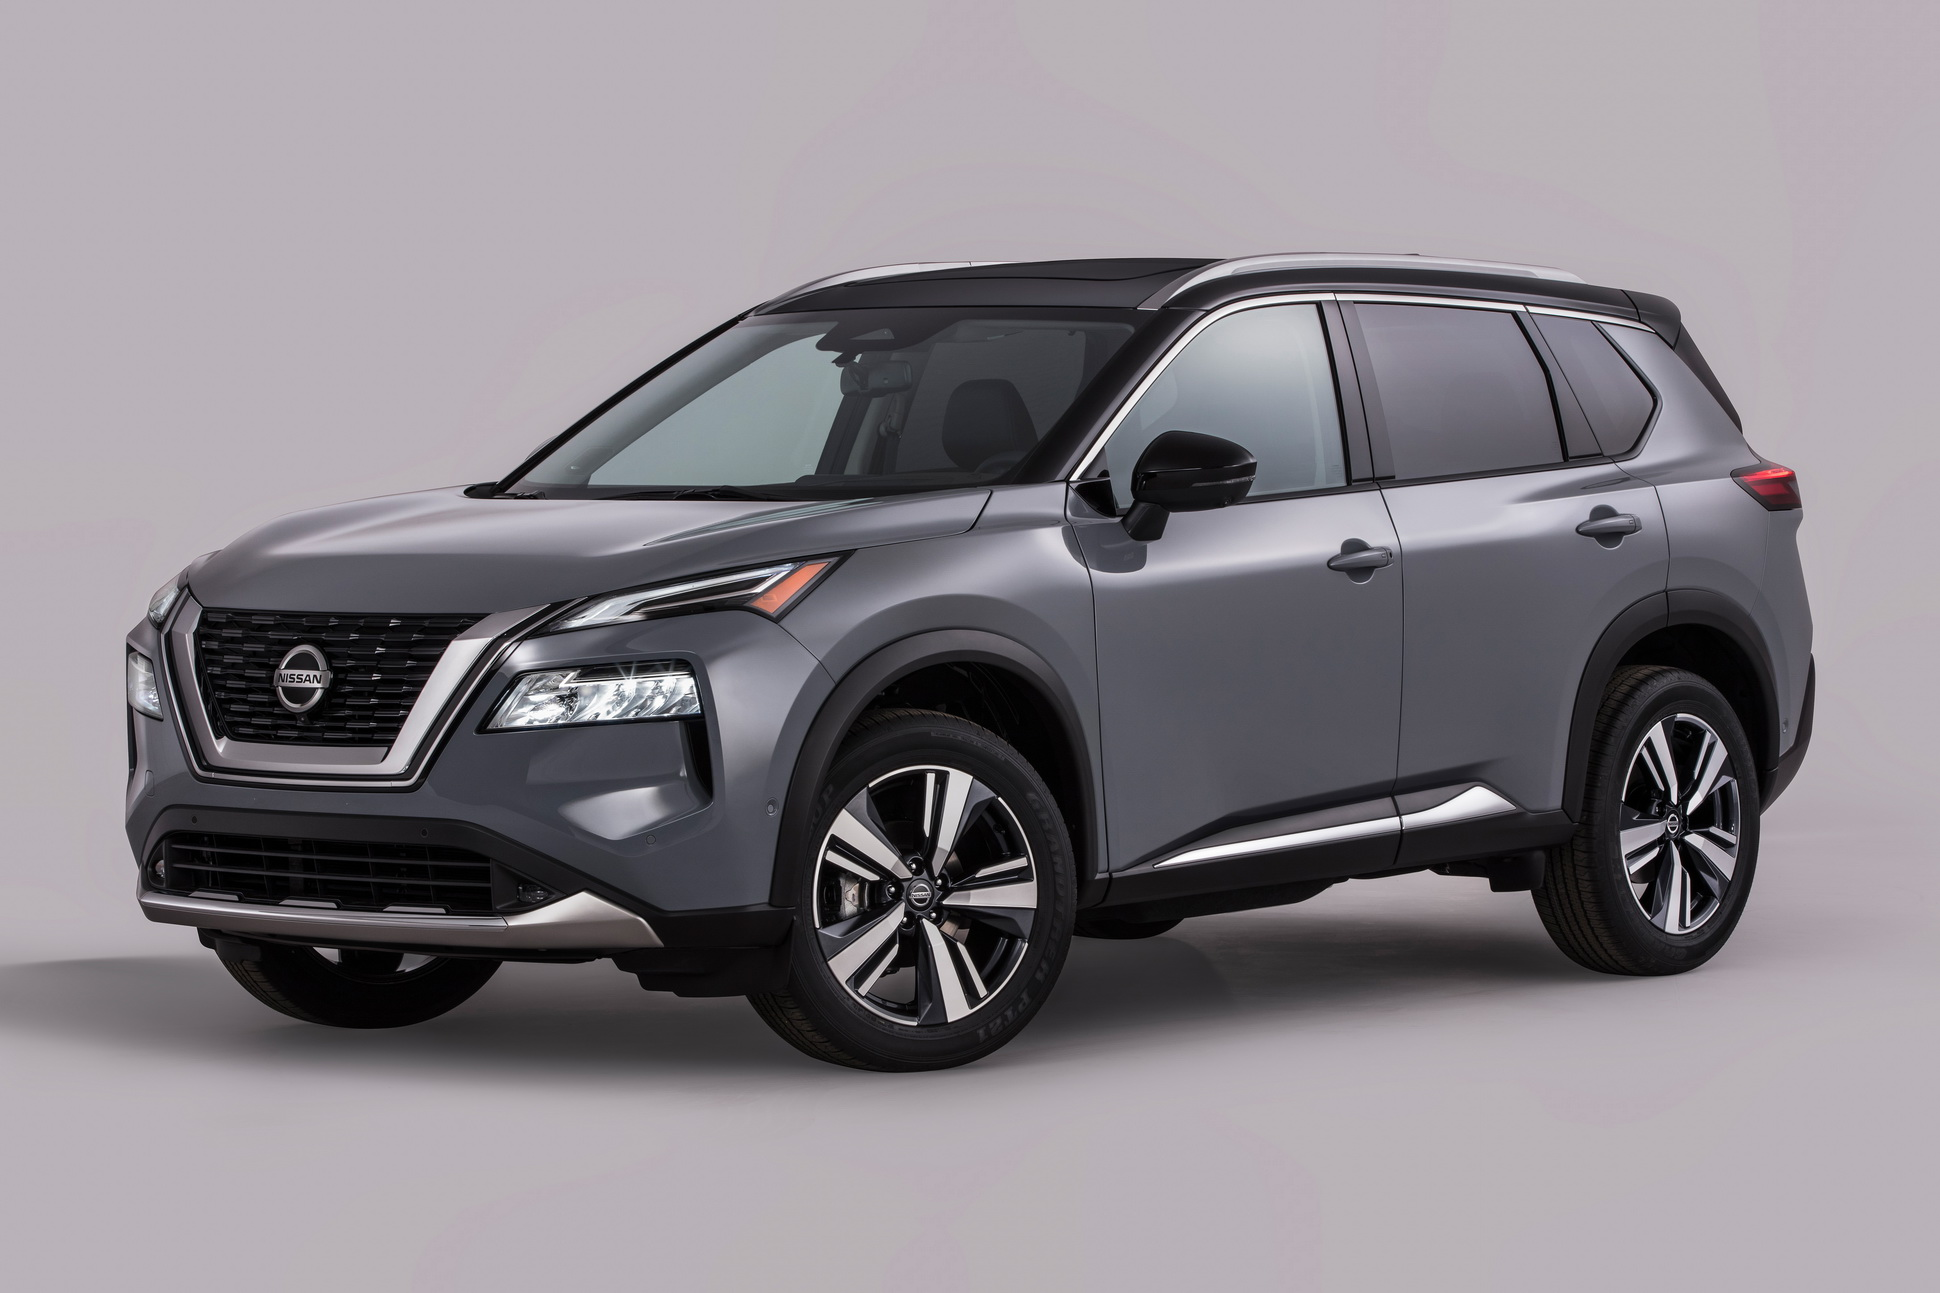 all-new 2021 nissan x-trail shows off its edgy design - news